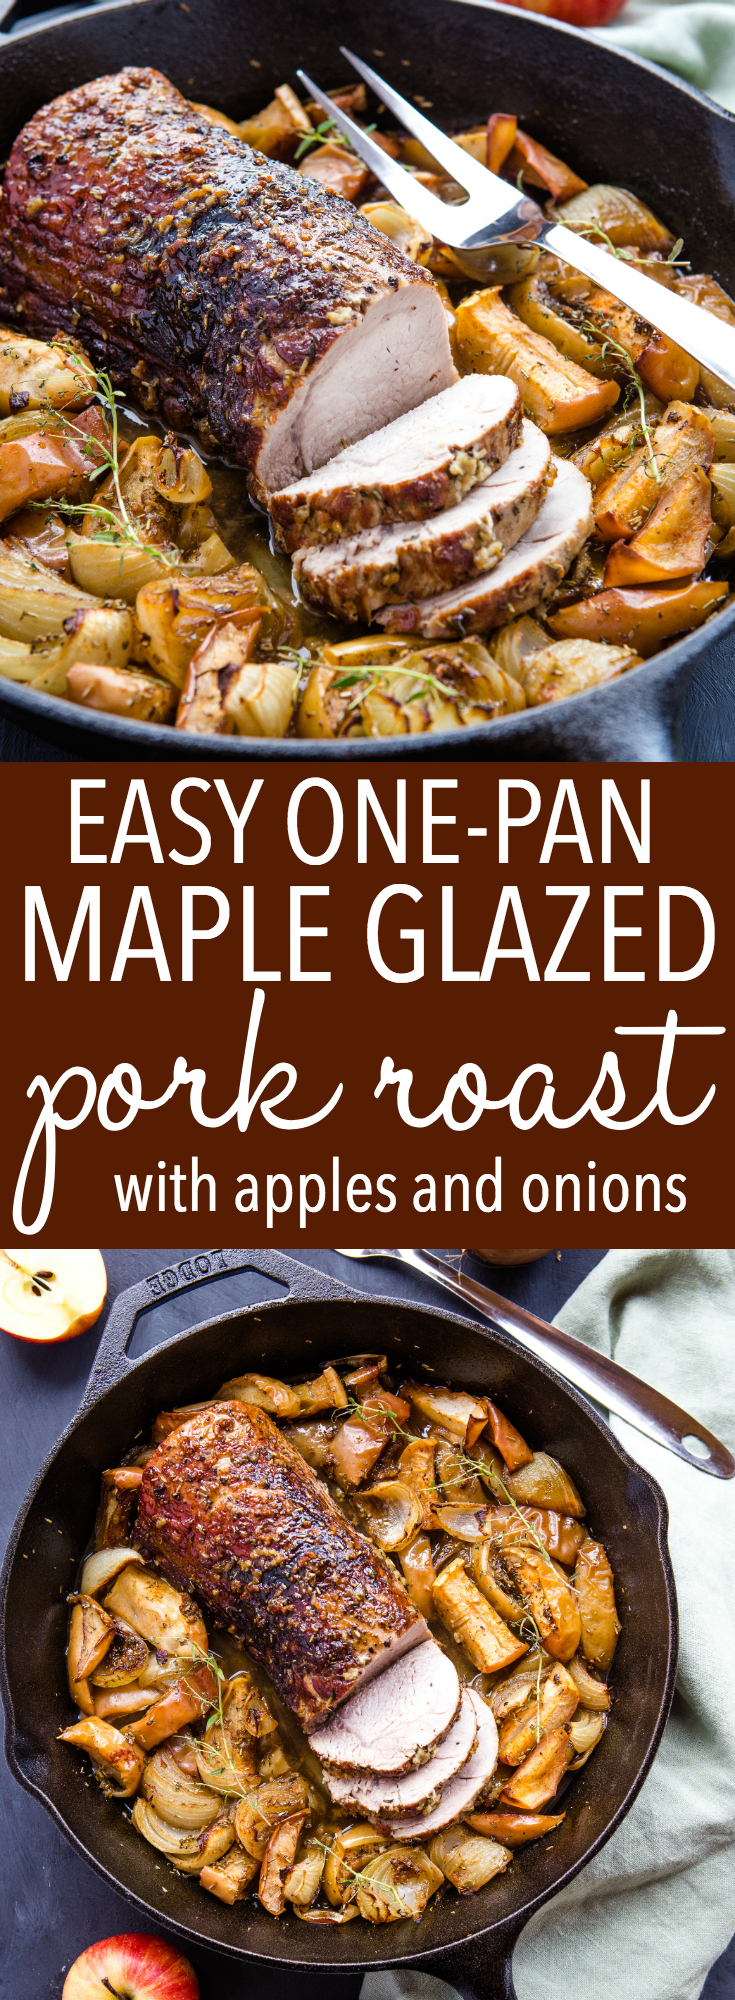 This Easy One Pan Maple Glazed Pork with Apples and Onions is a delicious and healthy holiday-inspired main dish made in one pan in less than an hour! Recipe from thebusybaker.ca! #pork #roast #sundayroast #sundaydinner #holiday #christmas #easter #thanksgiving #weeknightmeal #dinner #family #meal #castiron #apples #onions #roasted #mapleglazed #herbs via @busybakerblog